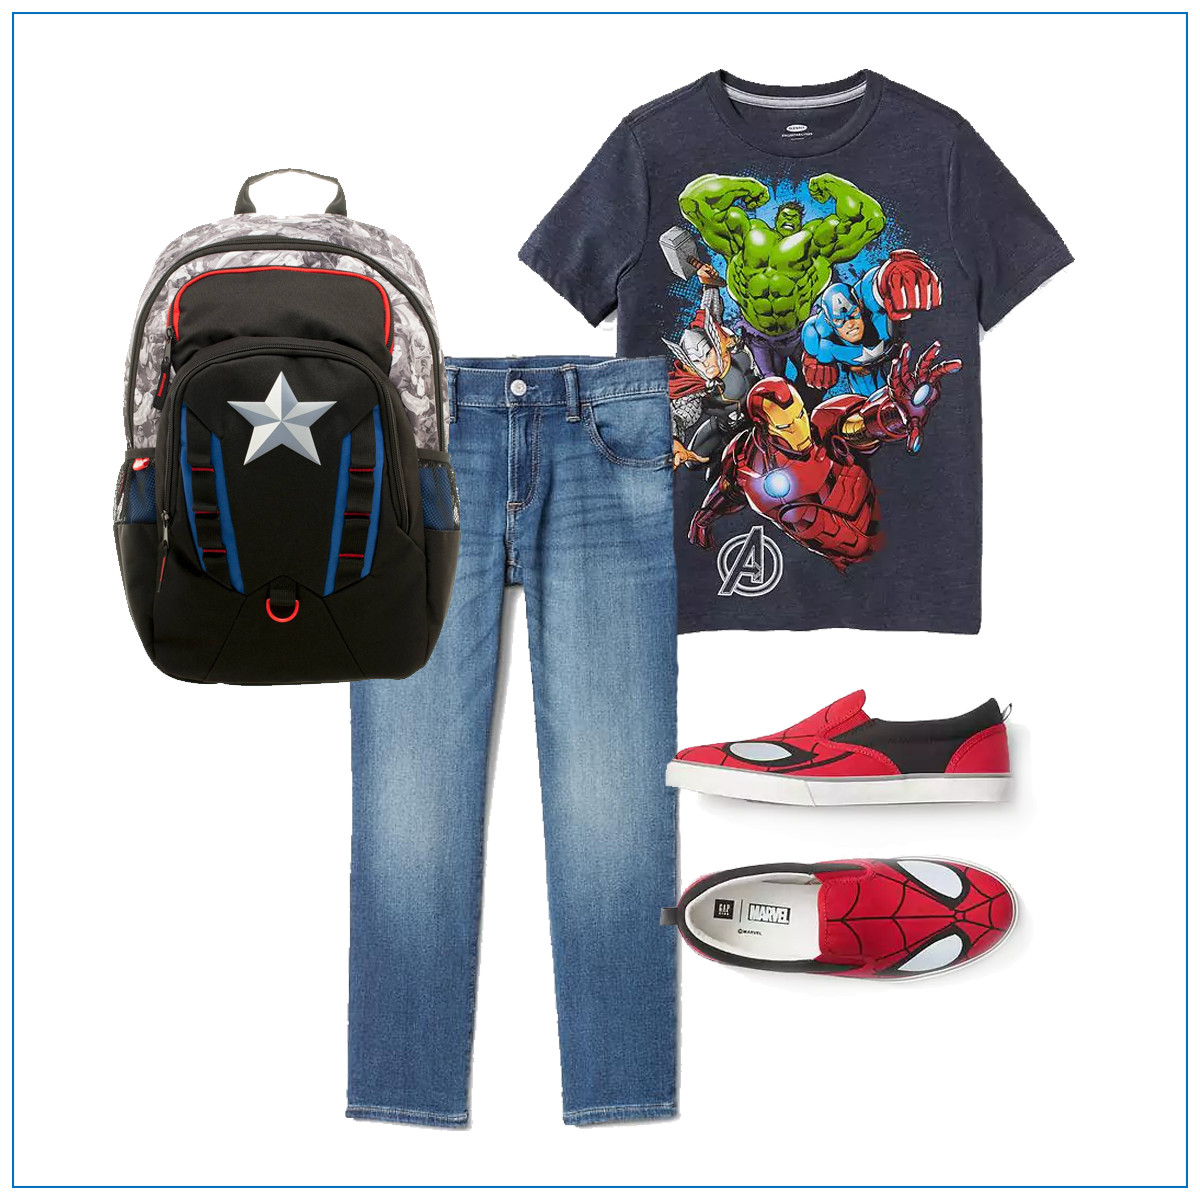 5 Cool Back to School Outfits for Boys